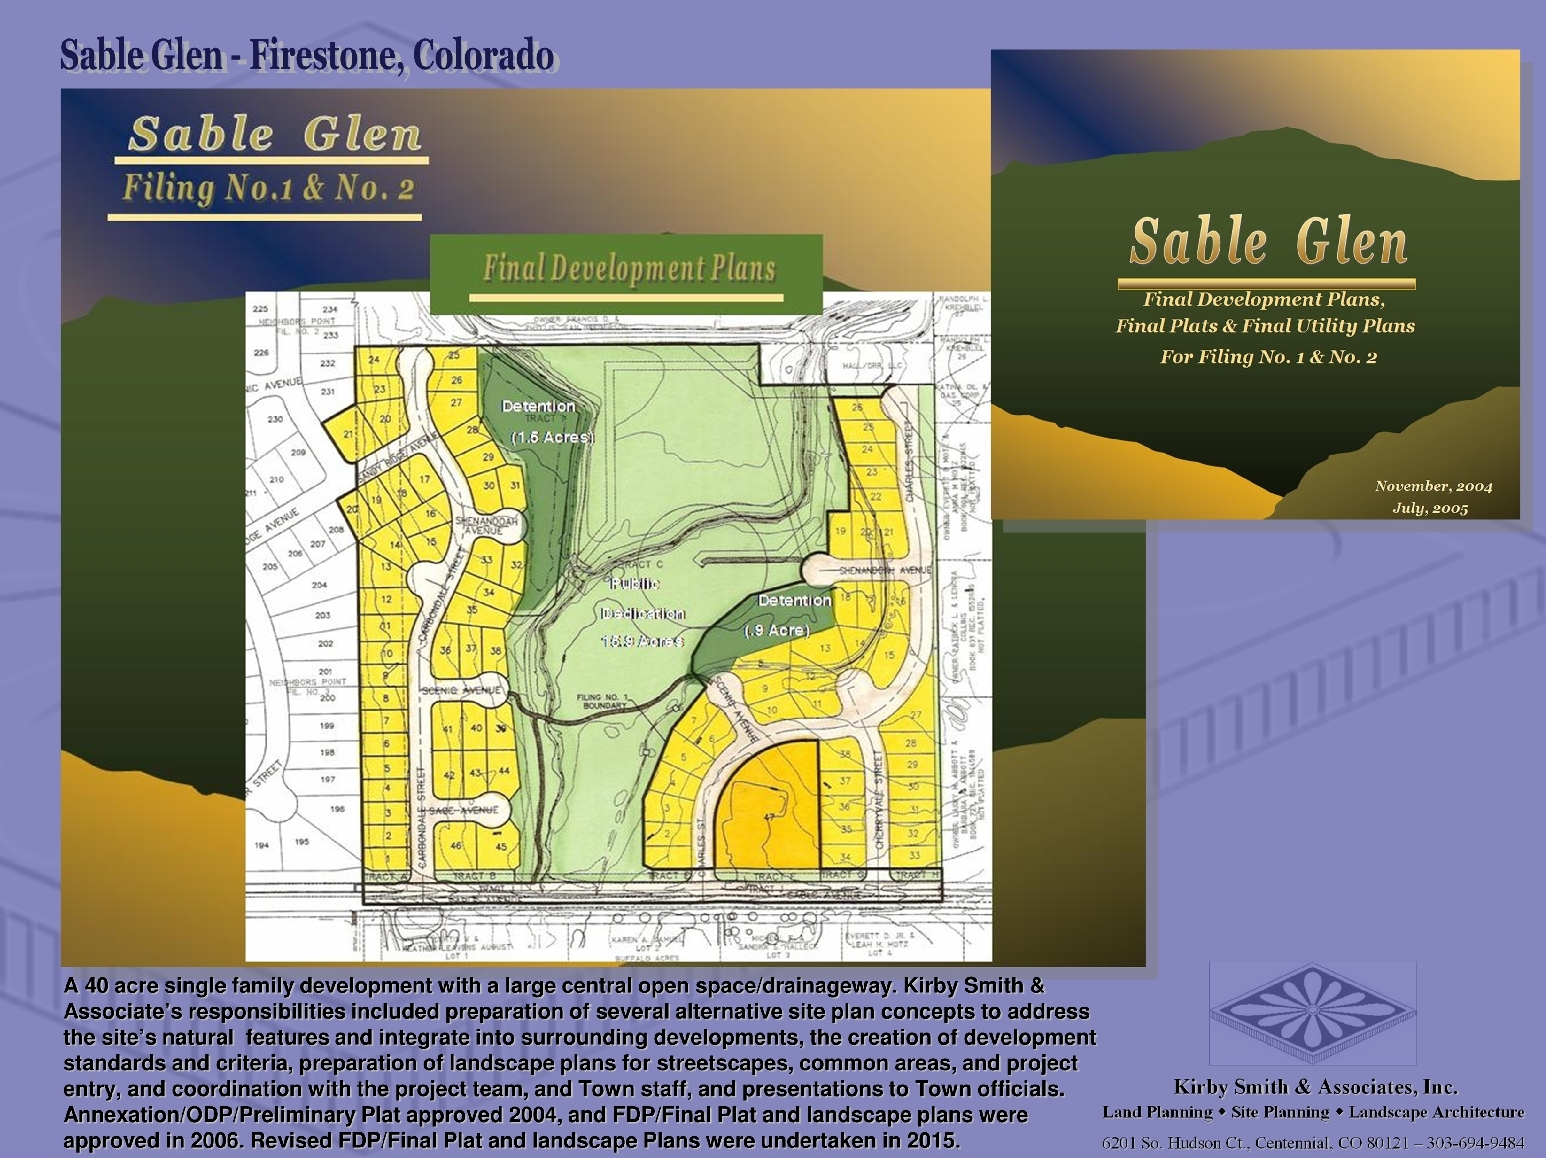 A 40 acre single family development. KSA, Inc's responsibilities included preparation of alternative site plan concepts to address natural  features & integrate into surrounding projects, creation of development standards, preparation of landscape plans for project entry, streetscapes, and common areas, coordination with project team, Town staff, and presentations to Town officials. Annexation/ODP/Prelim. Plat approved 2004. Revised FDP/Final Plat currently underway.